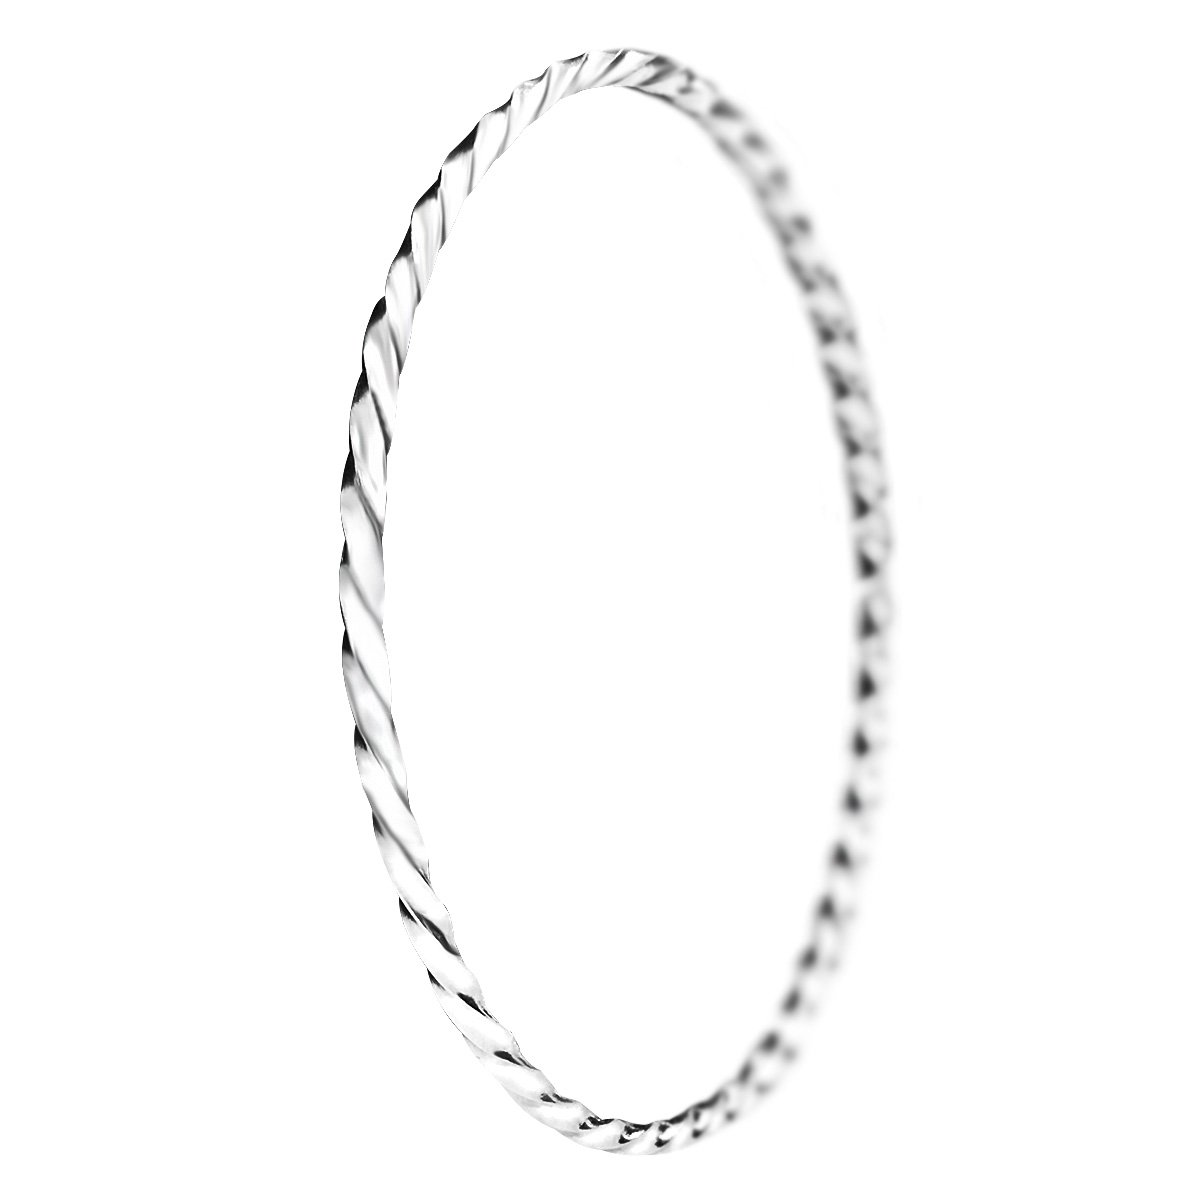 Merdia S925 Sterling Silver Solid Twisted Bangle Bracelet for Women and Ladies 7.3cm